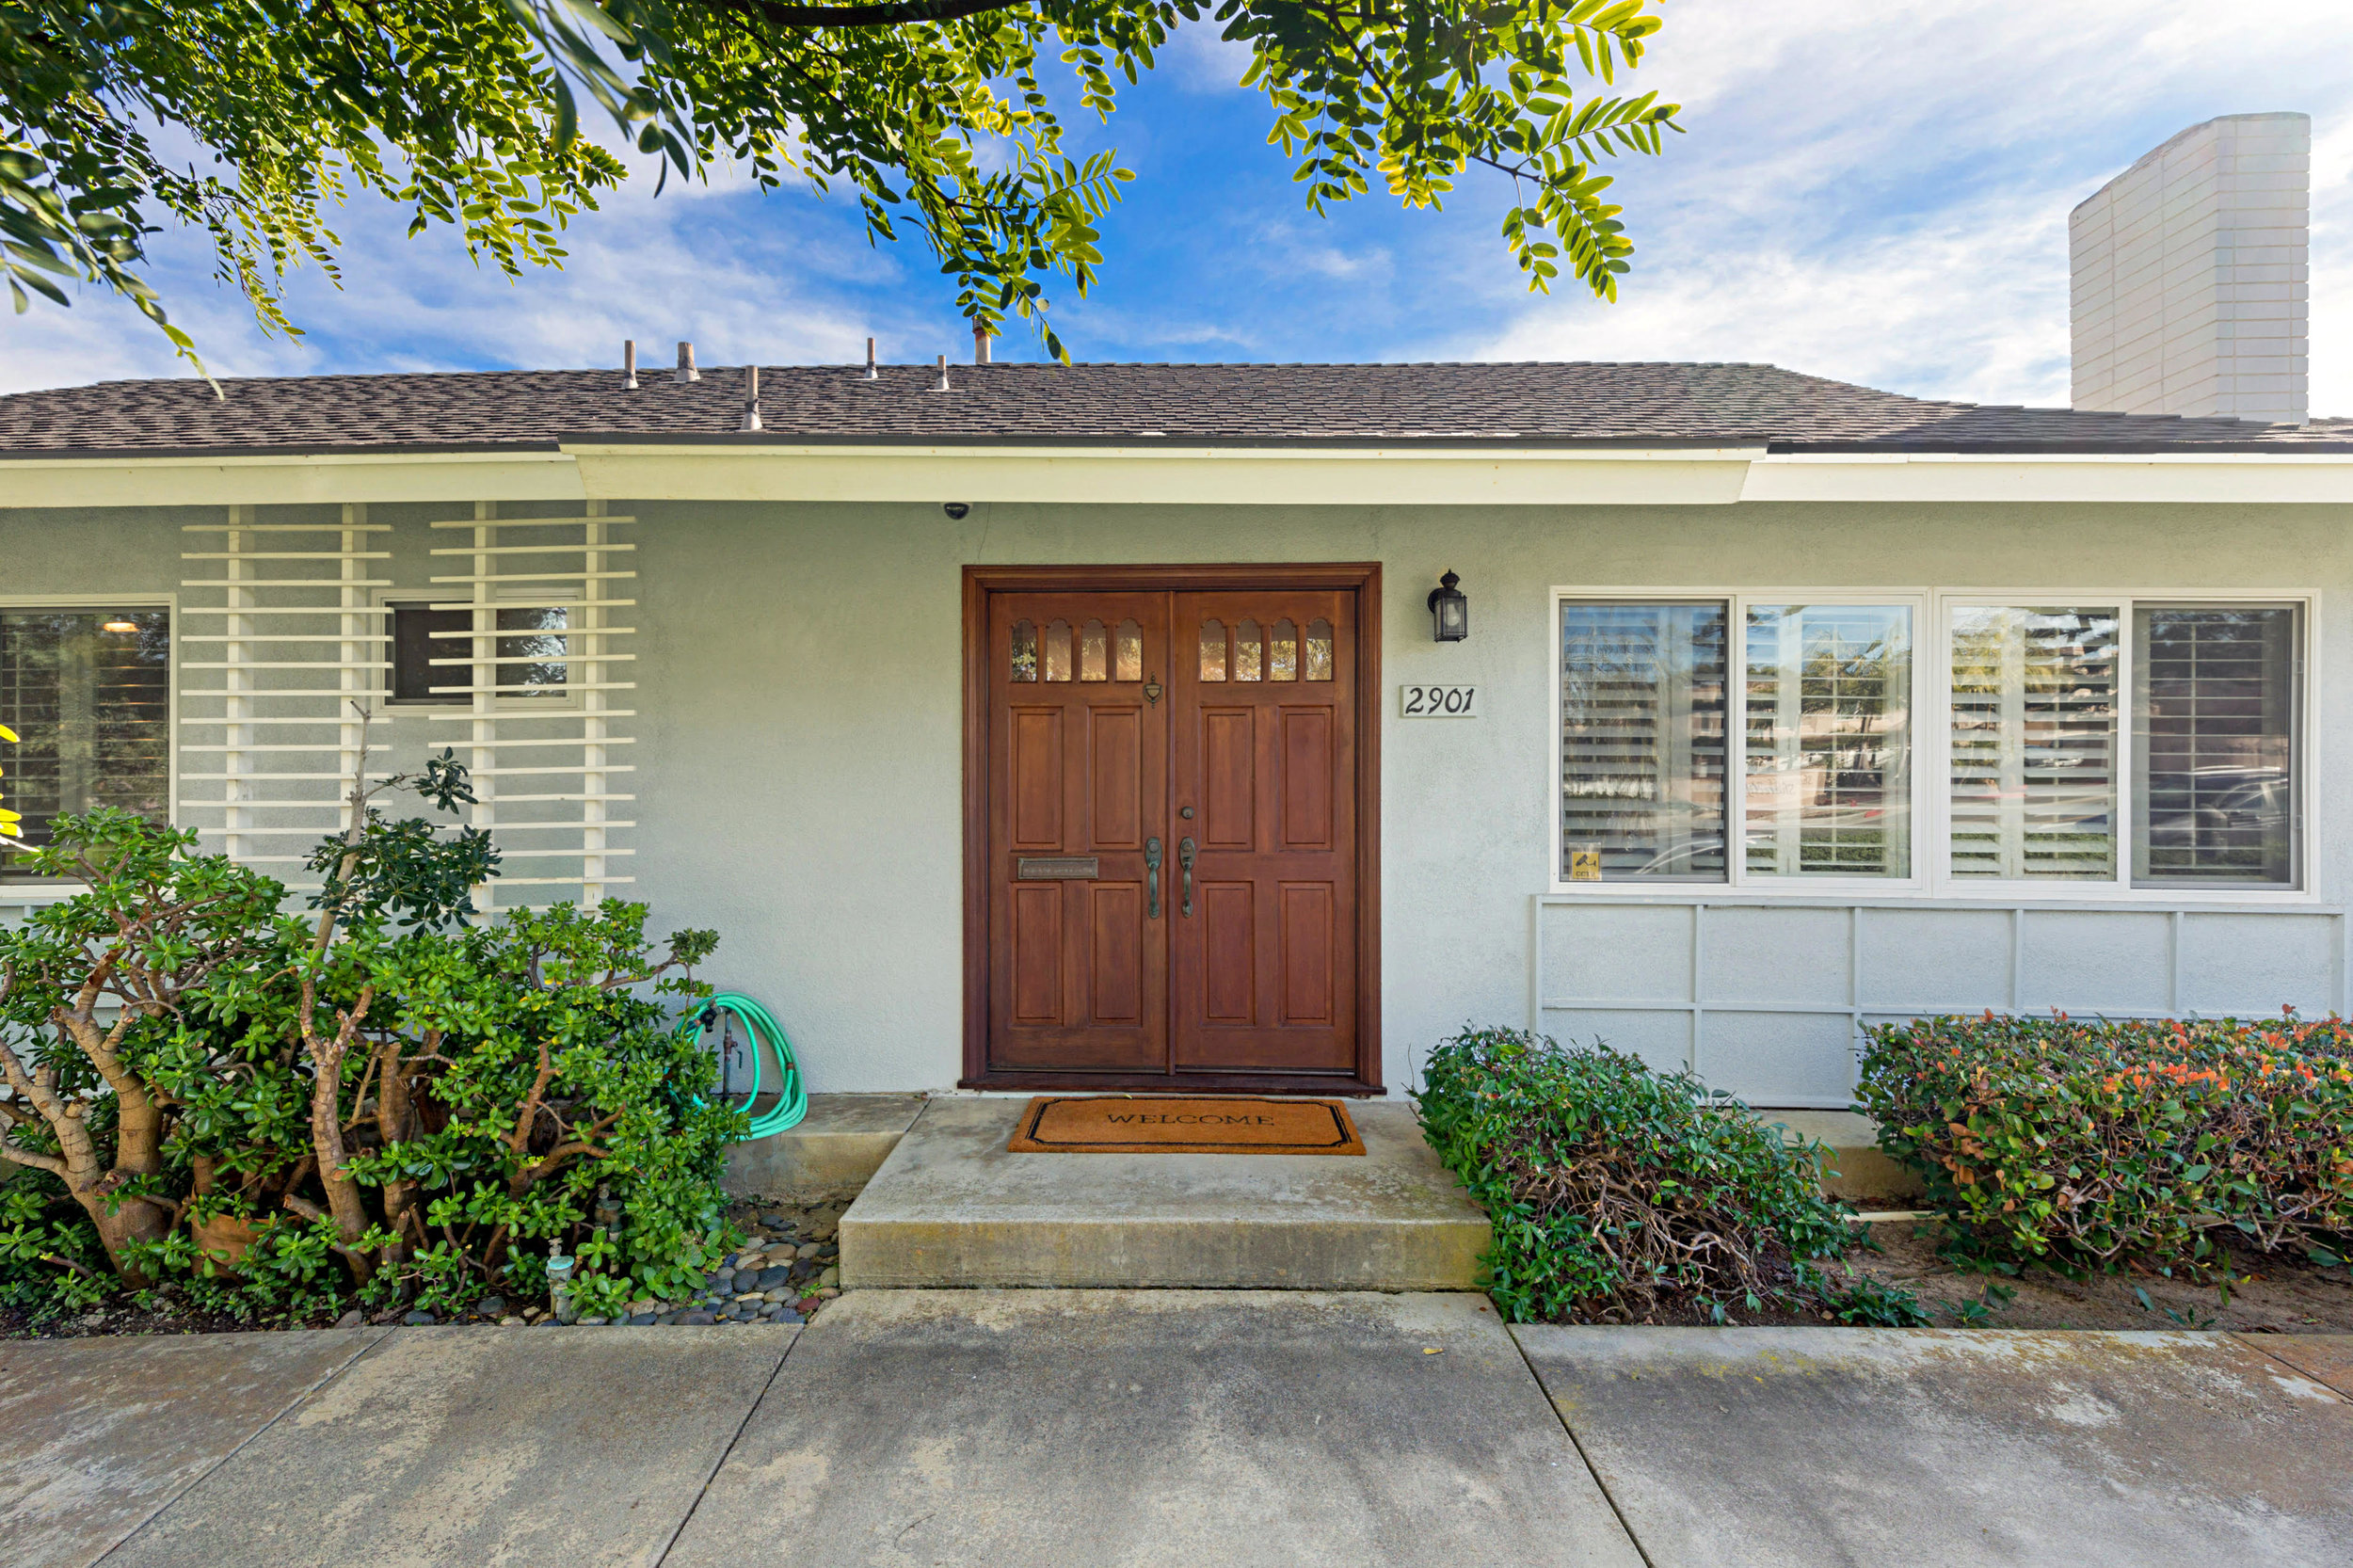 SOLD FOR $525,000   San Clemente  2 BR | 2 BTH | 1,250 SQ/FT